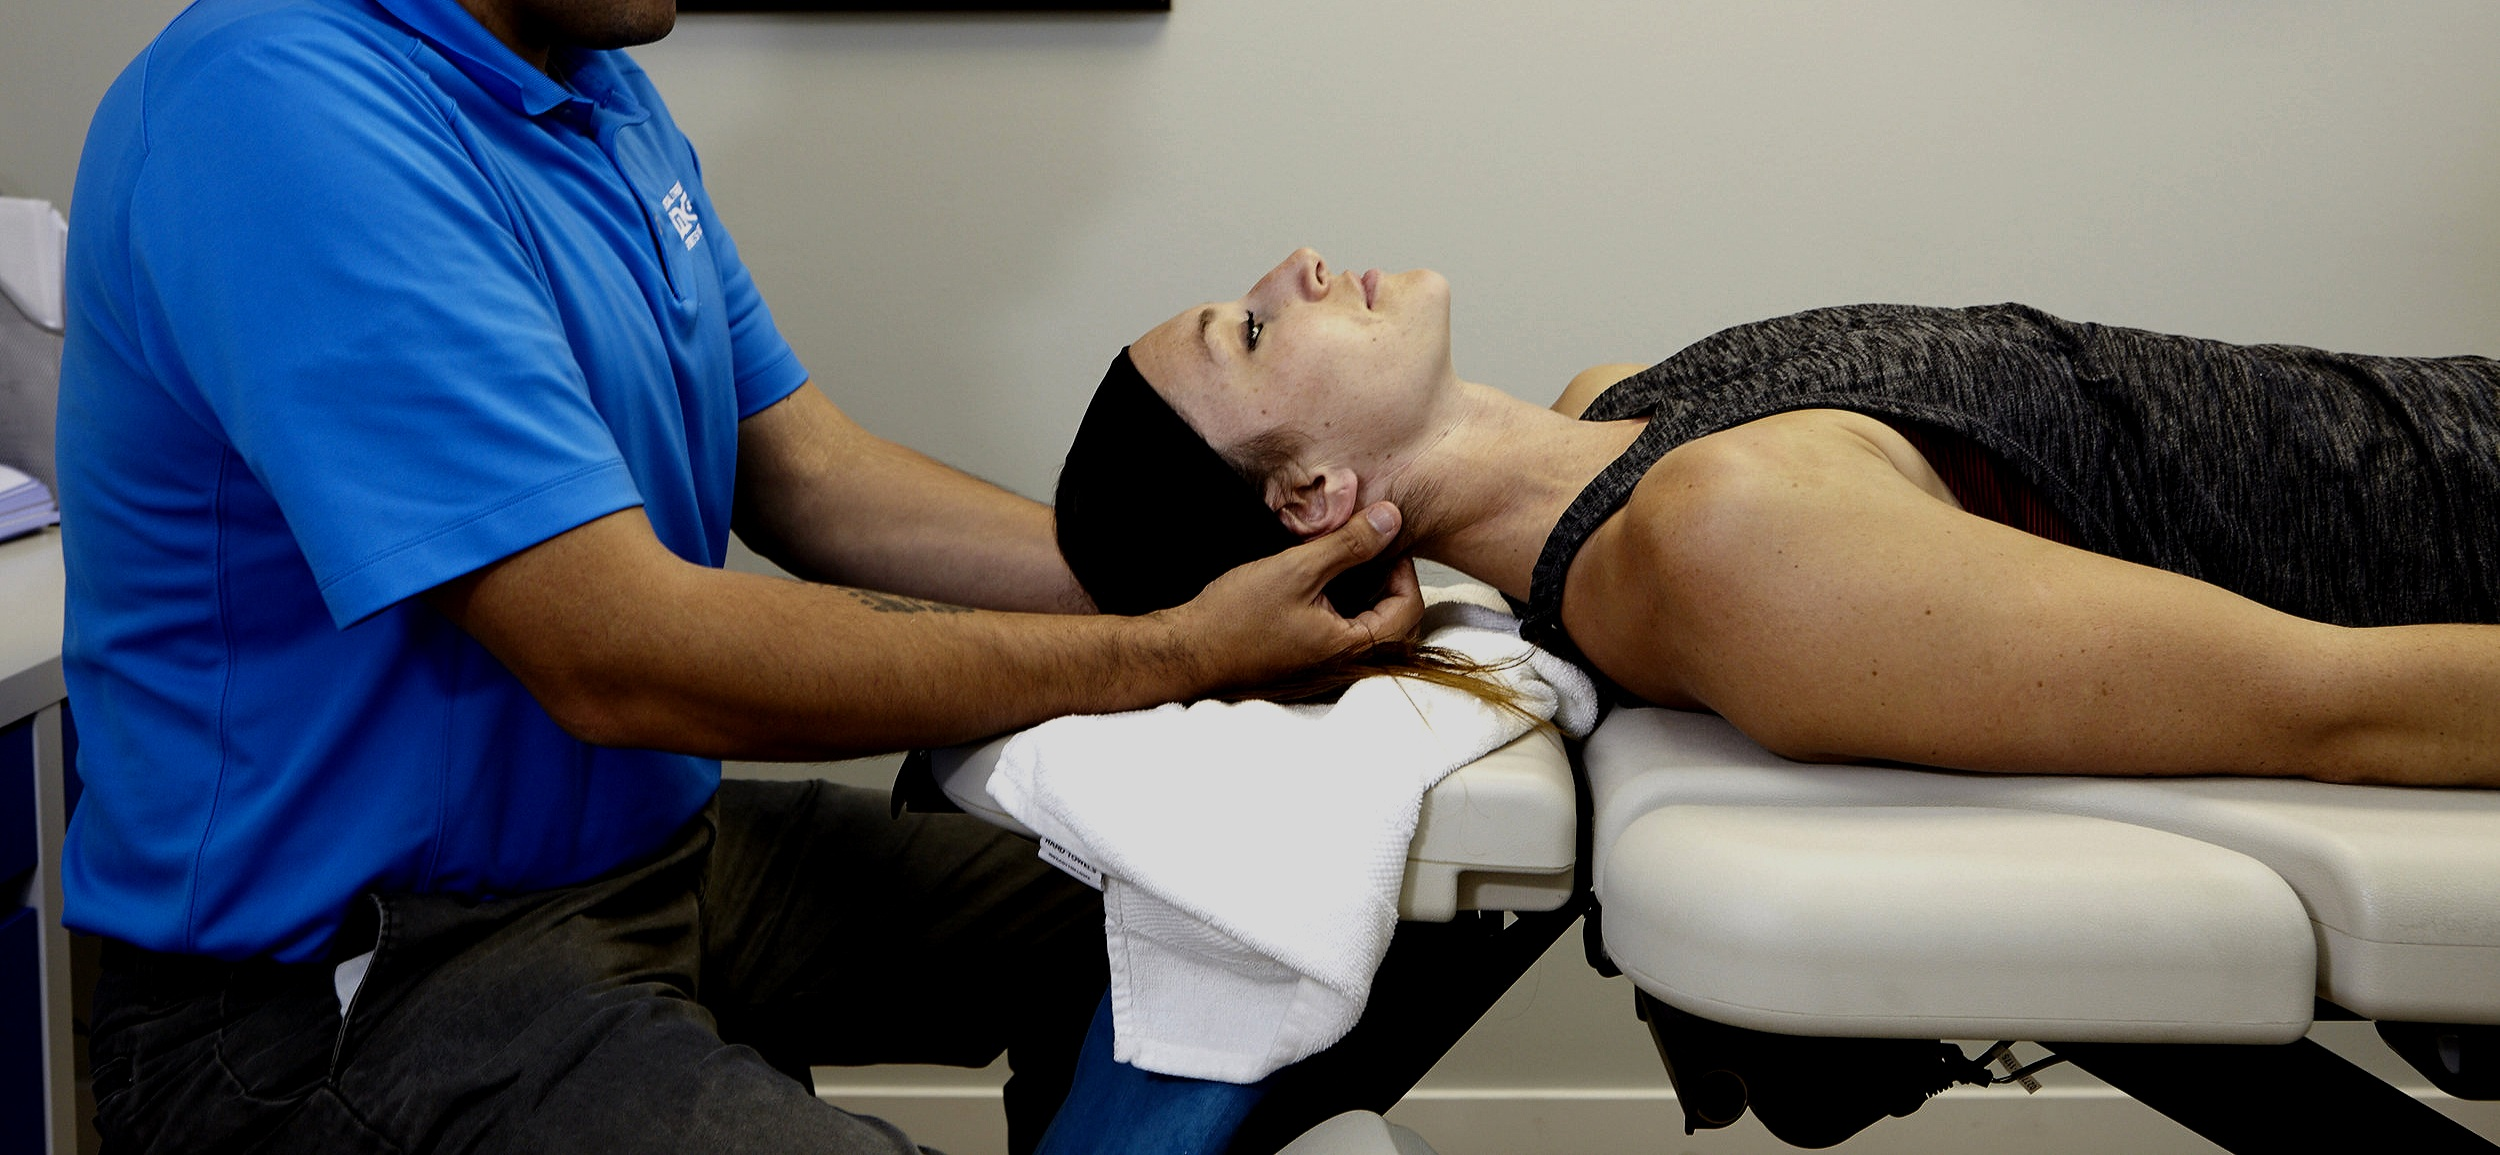 EDGE PHYSICAL THERAPY & SPORTS MEDICINE   PERSONAL ATTENTION.  MODERN TECHNOLOGY.  A CONNECTED EXPERIENCE